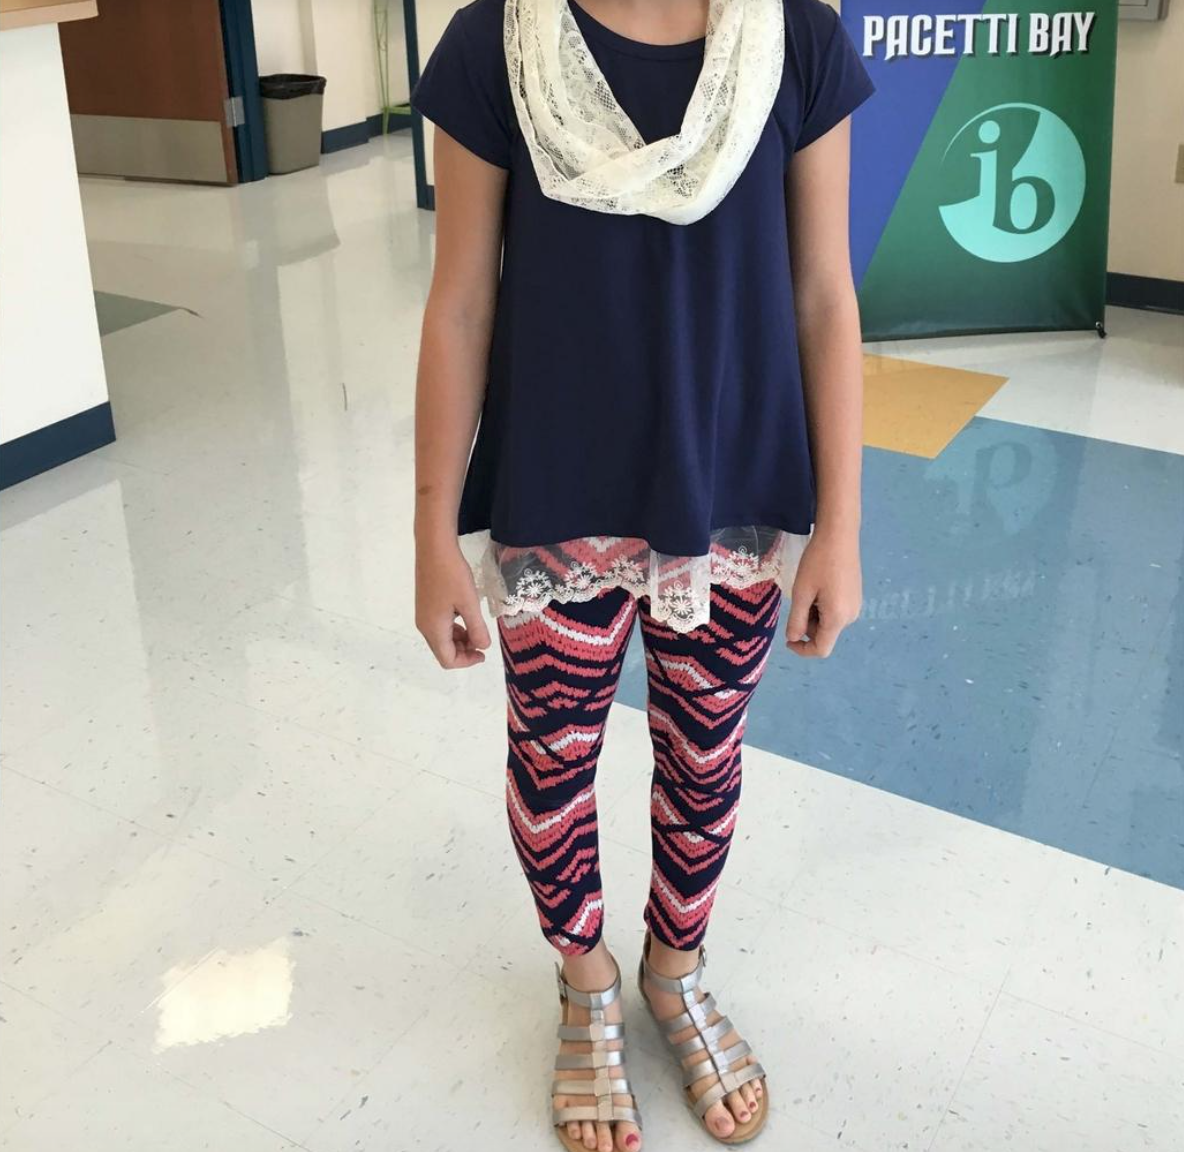 An unidentified sixth-grader who was reportedly in violation of the dress code at Pacetti Bay Middle School in St. Augustine, Fla. (Photo: Facebook)